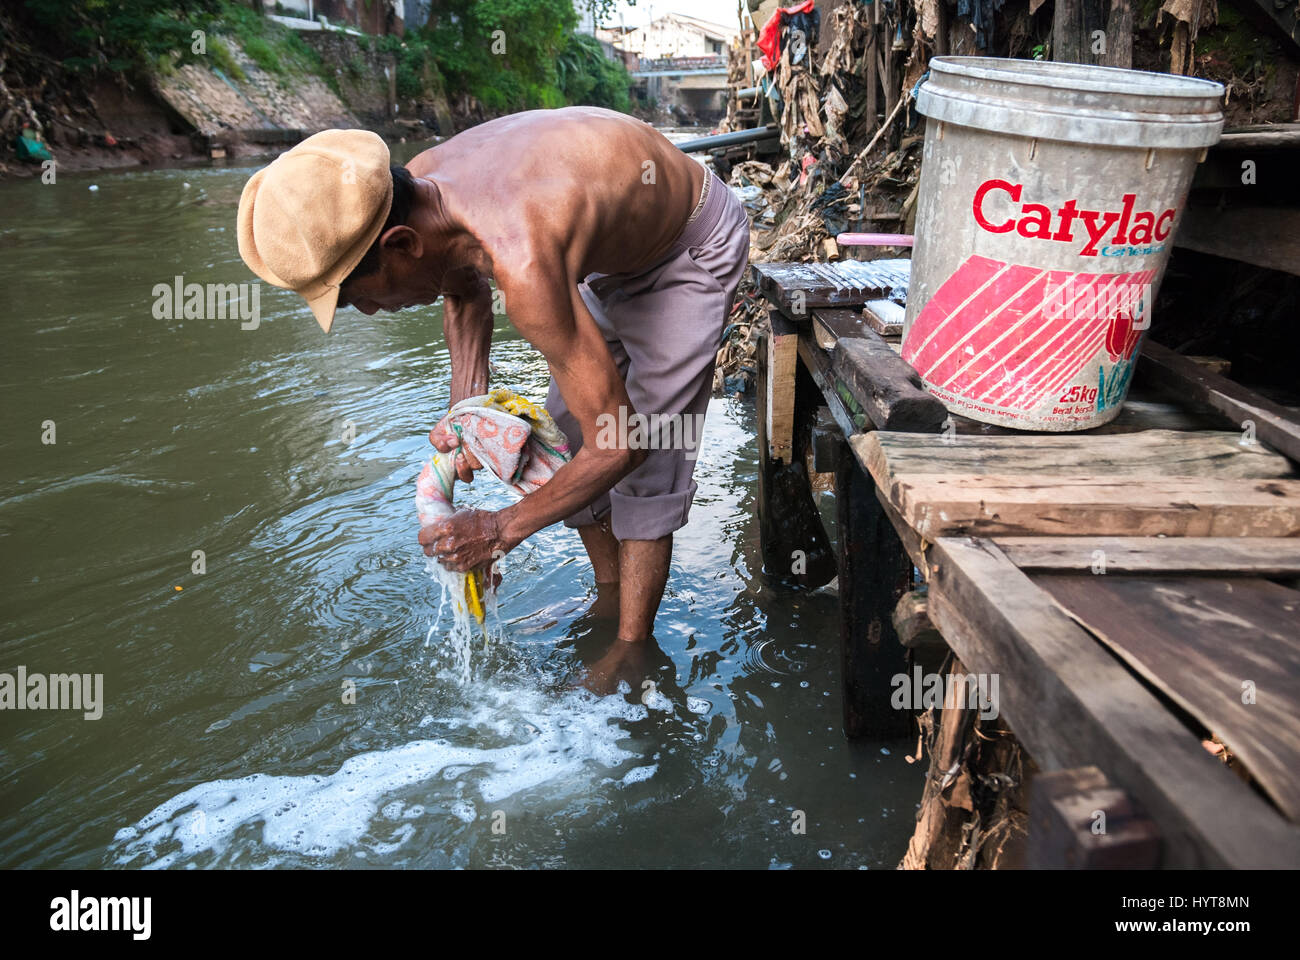 A man washes a towel on the Ciliwung River in Bukit Duri area, Jakarta, Indonesia. © Reynold Sumayku - Stock Image